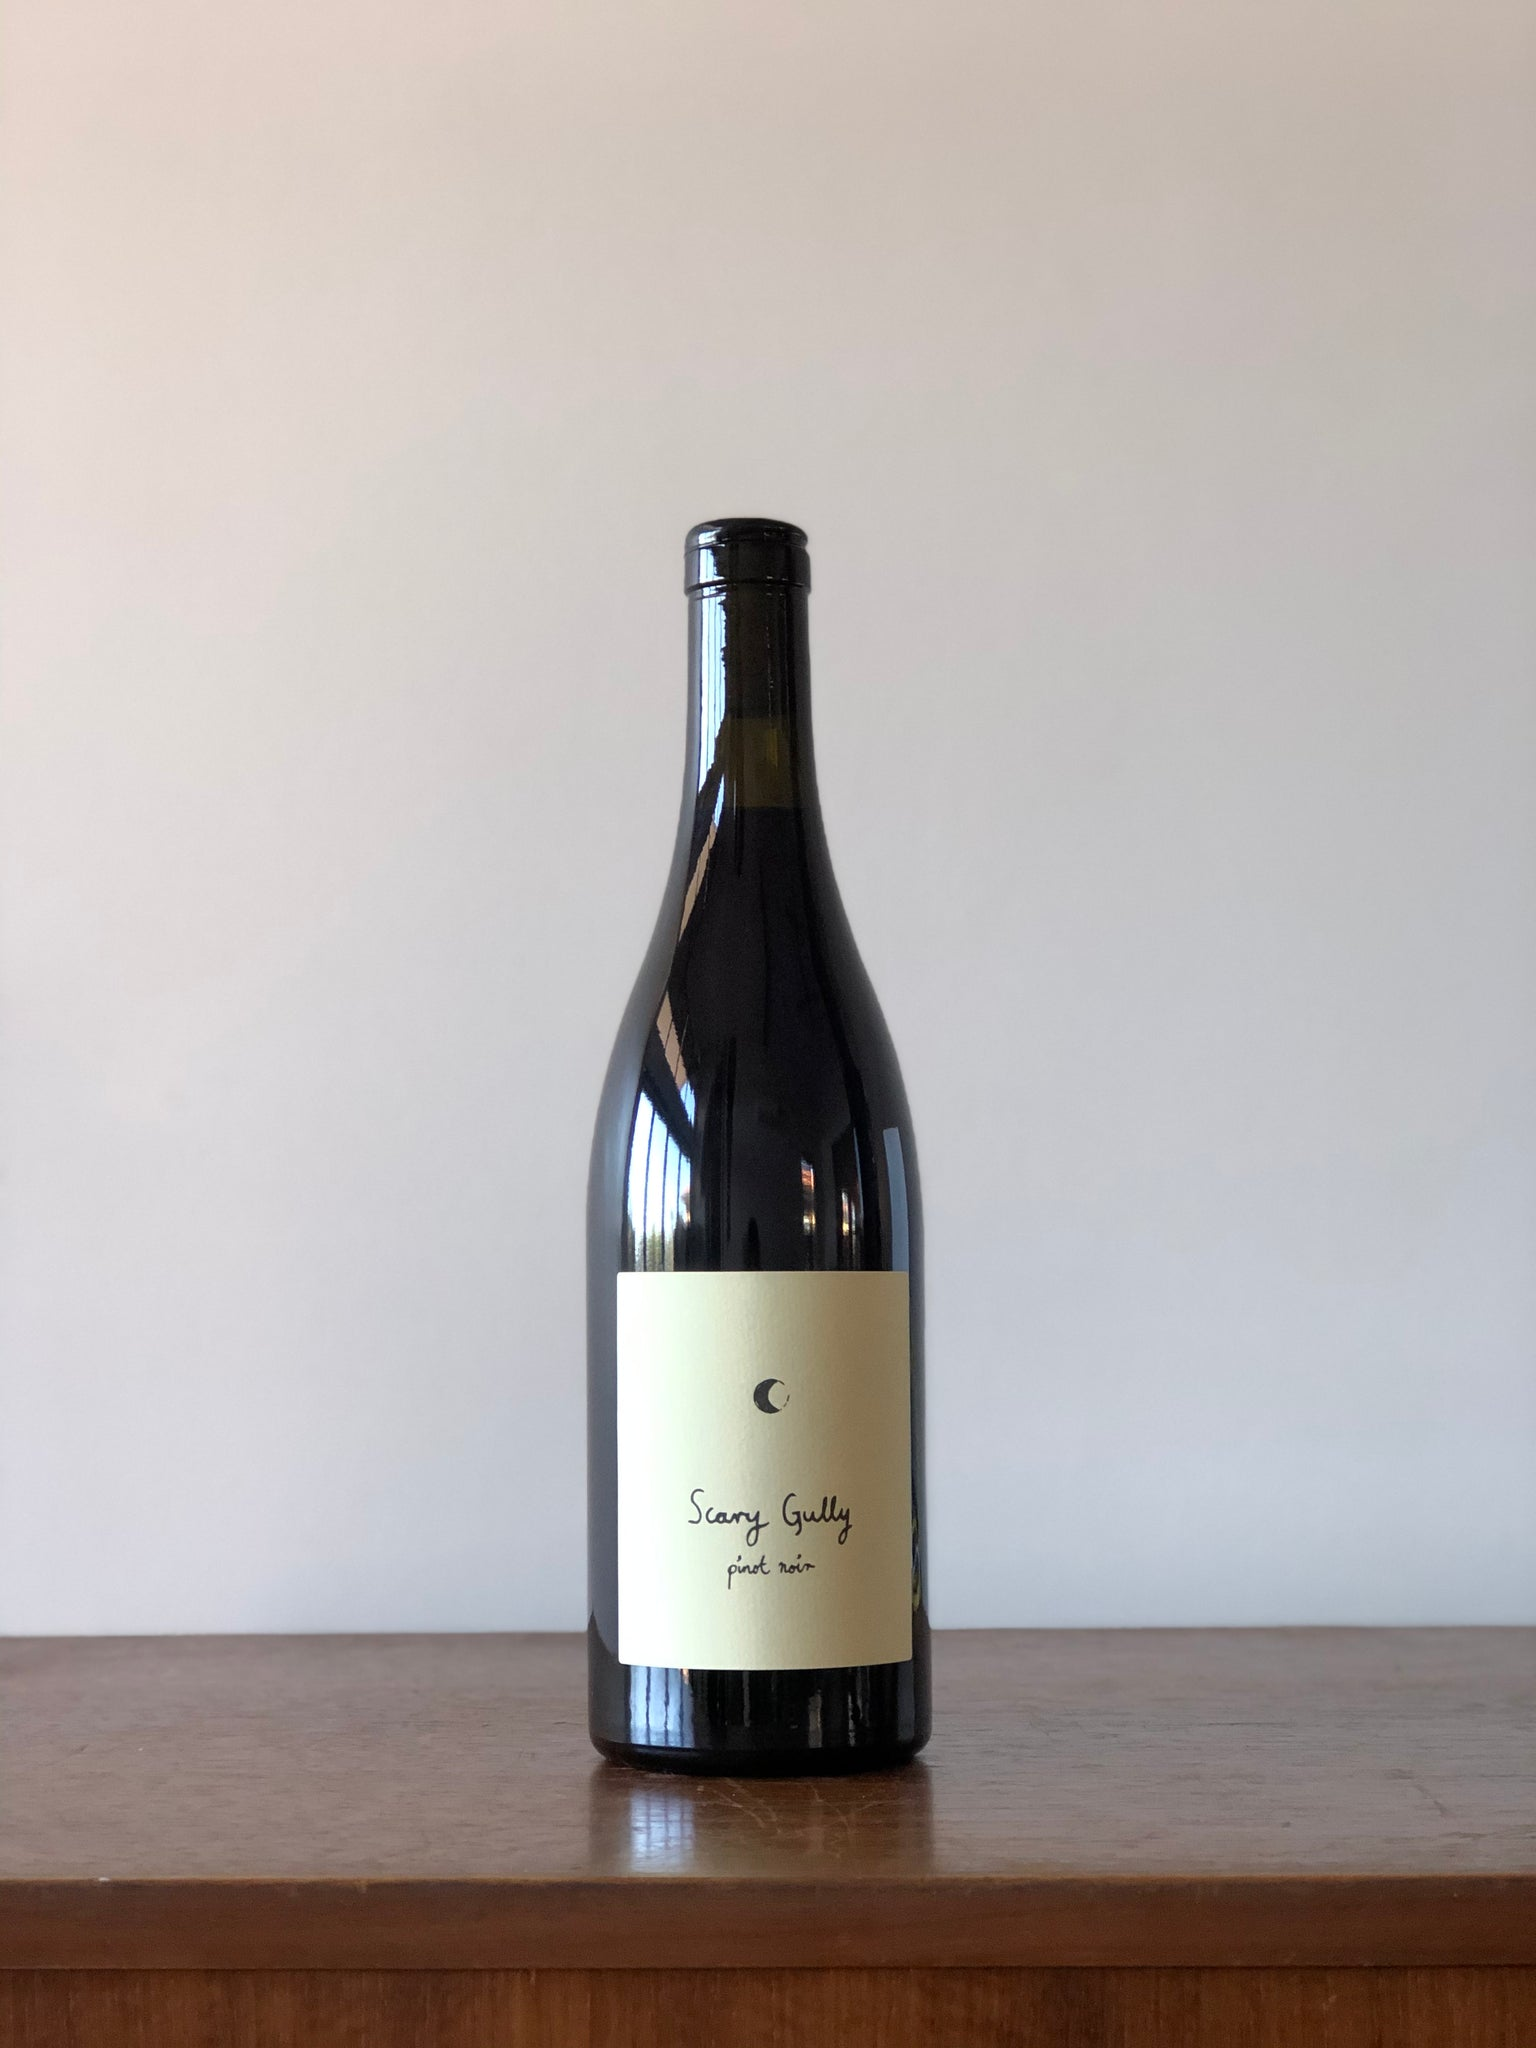 2019 Gentle Folk Scary Gully Pinot Noir